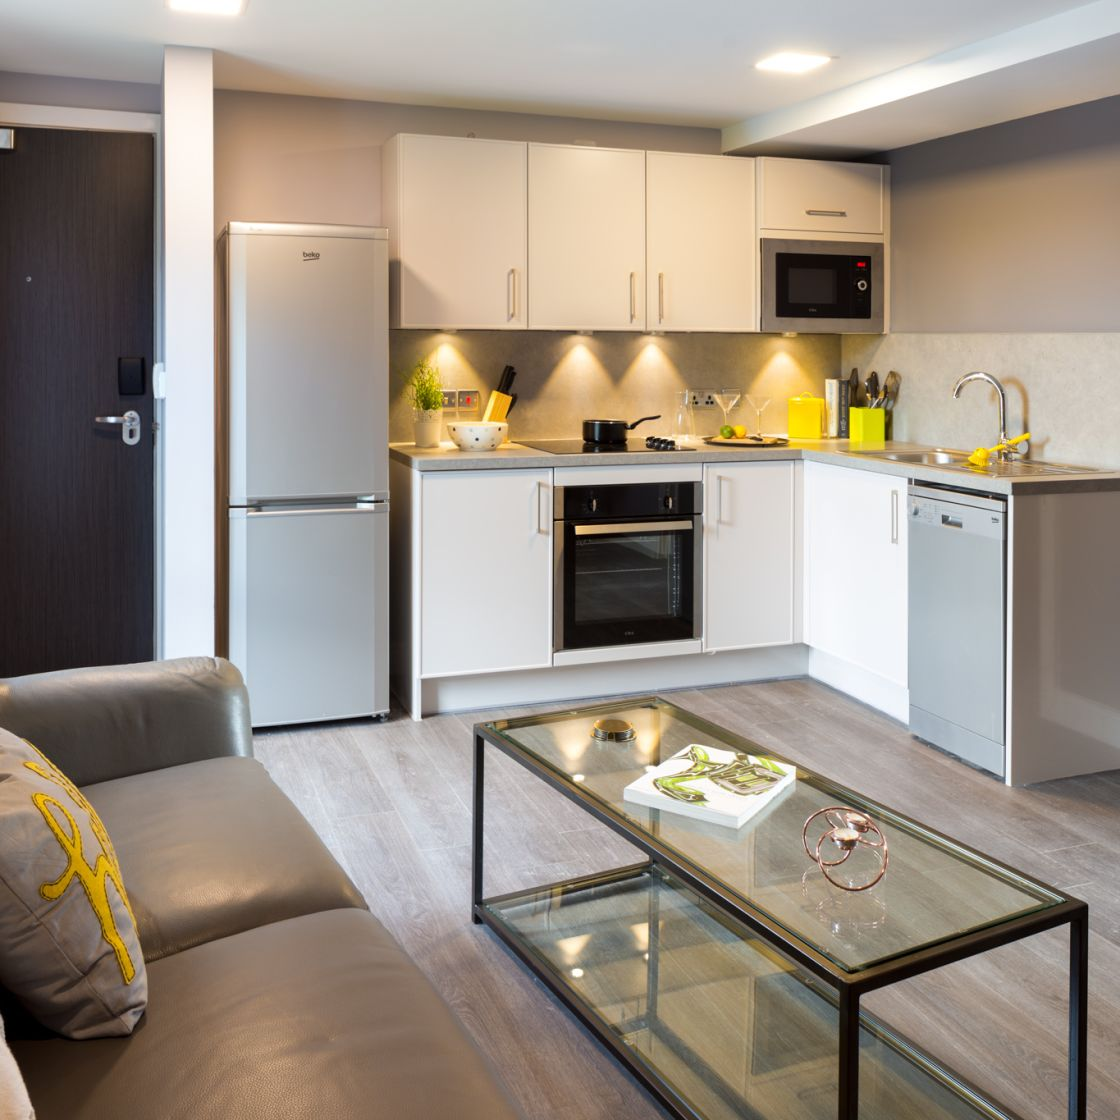 Grande Student Apartment in Leeds Kitchen, Sofa and Coffee Table. IconInc, The Glassworks